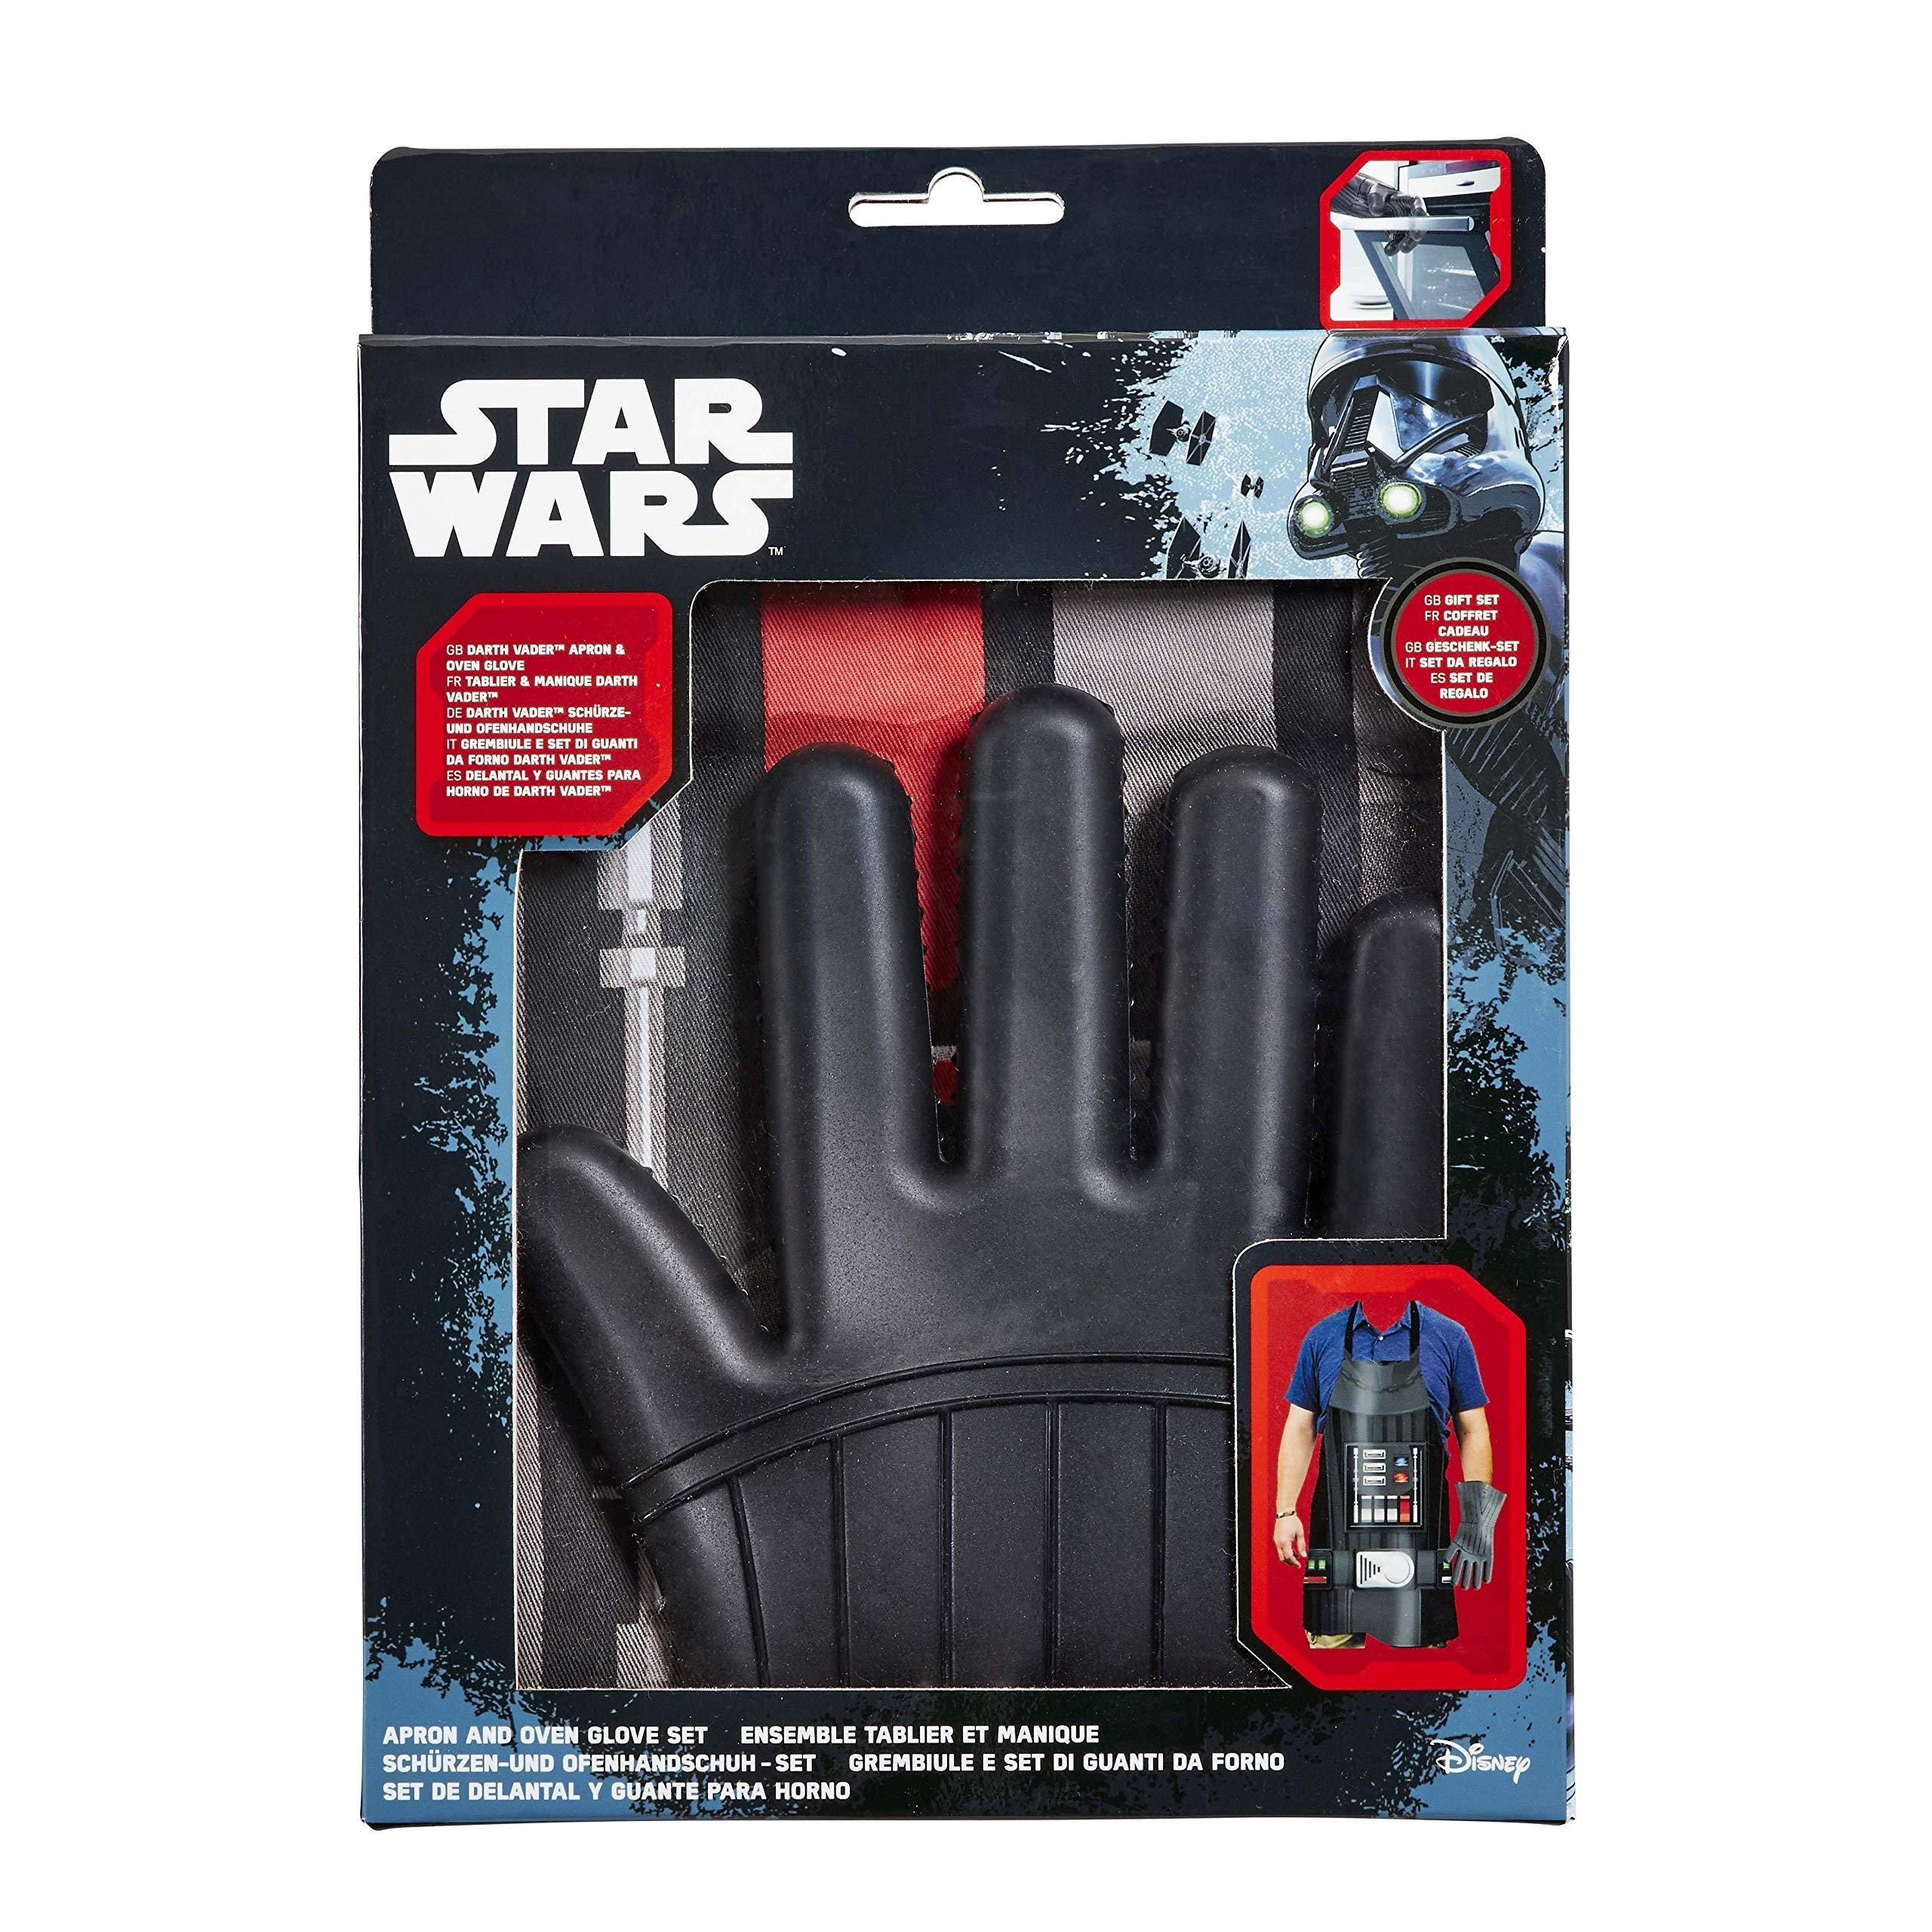 8caa337f7b Star Wars grembiule e guanto da forno Set Regalo: sono Darth grembiule e  guanto da forno in silicone Darth Vader (singolo, set di 2, colore: nero |  ...